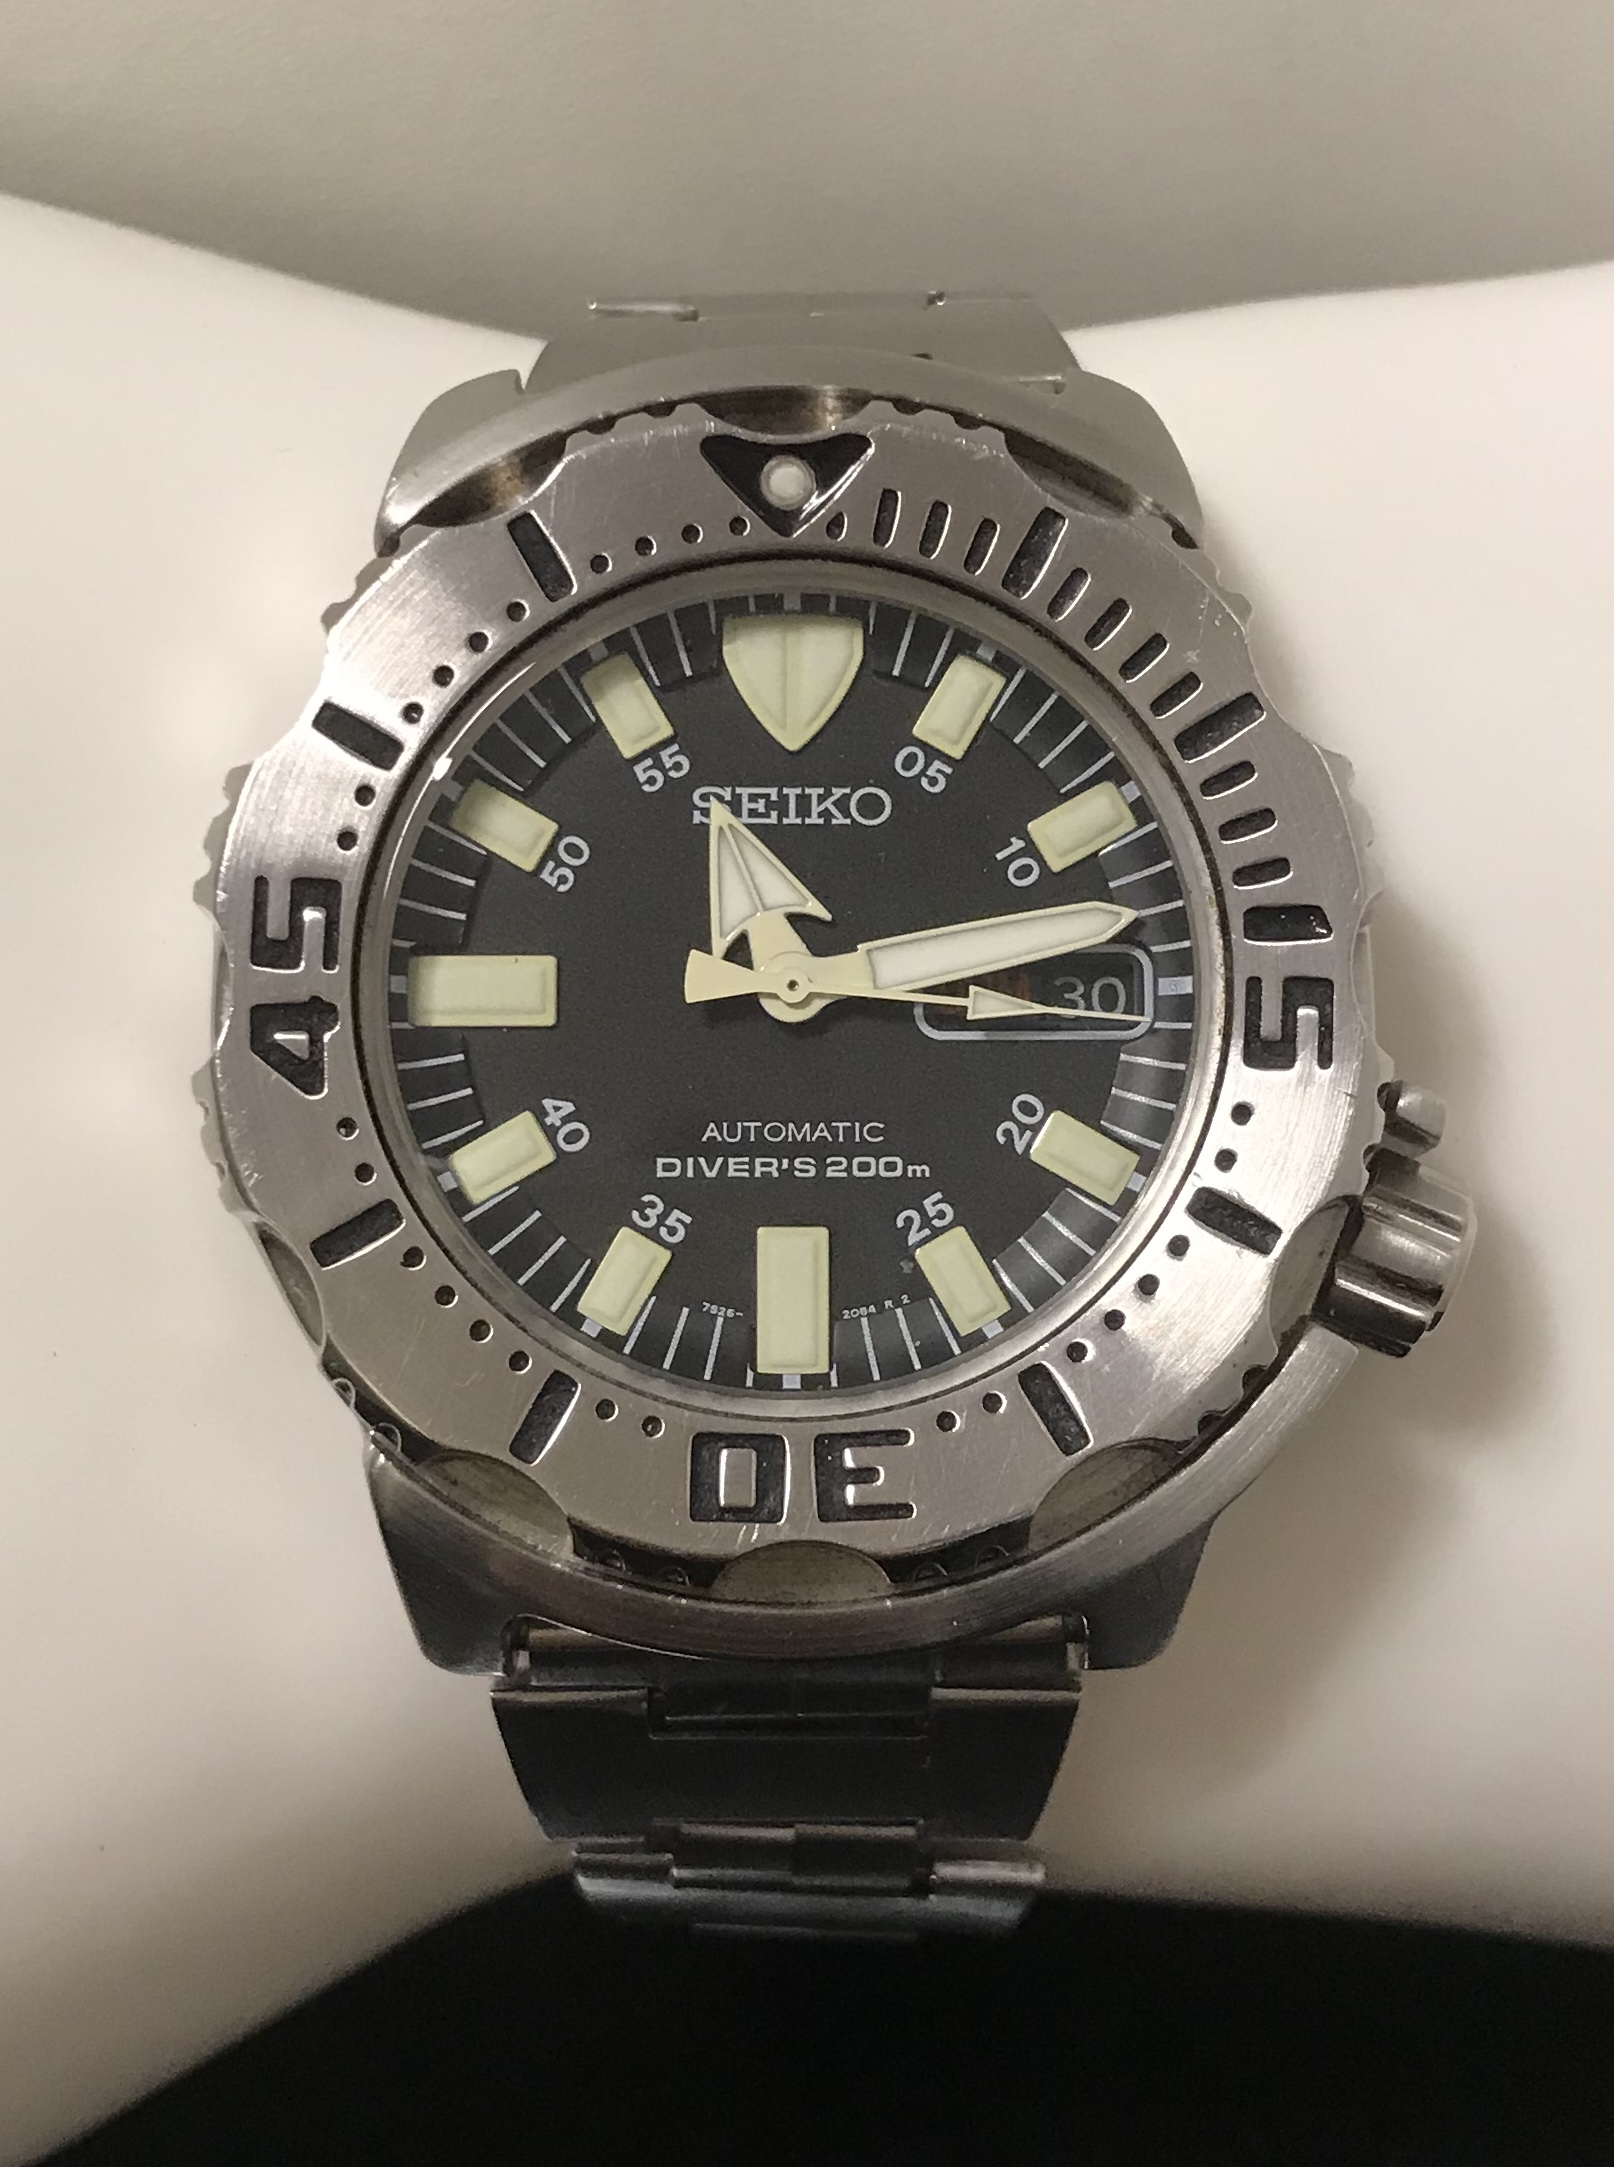 Seiko Automatic Divers 200m - Image 8 of 10